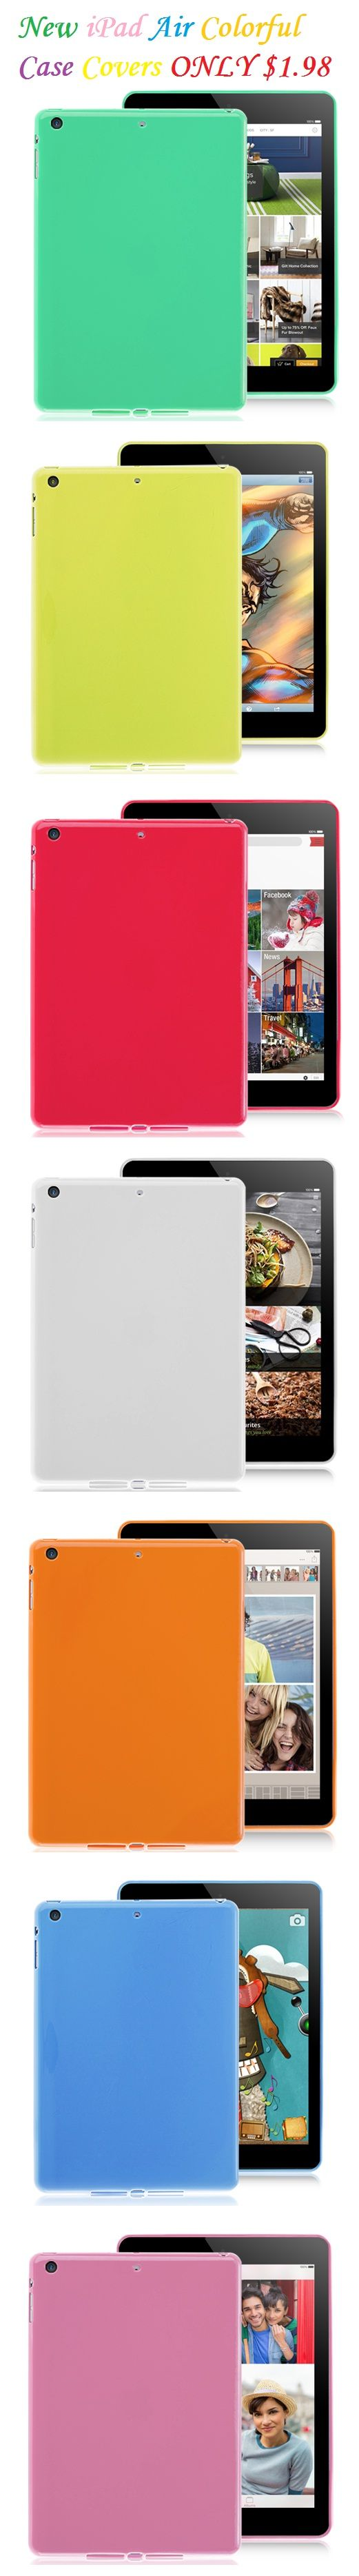 New iPad Air TPU Solid Colorful Case Covers #ipadaircase #ipadair #ipadcase #casecover #tpucase #colorfulcase #popularcase #bestoftheday #300likes #photooftheday #pinterest #lovelycase #cute #colorful #case #cellz.com #cheapcase $1.98